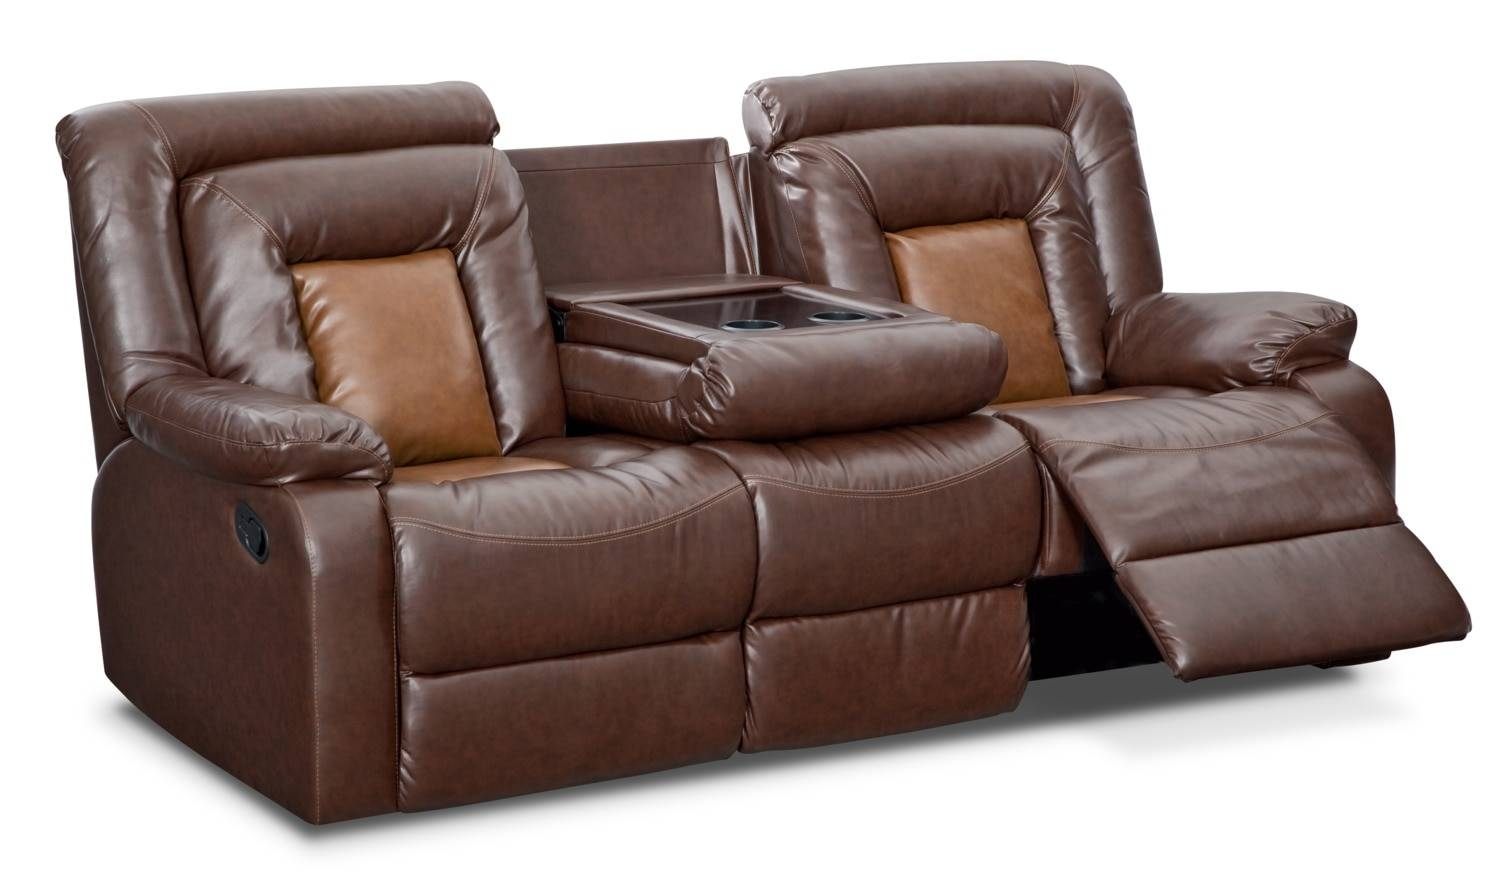 Mustang Dual-Reclining Sofa With Console - Brown | Value City throughout Recliner Sofa Chairs (Image 22 of 30)